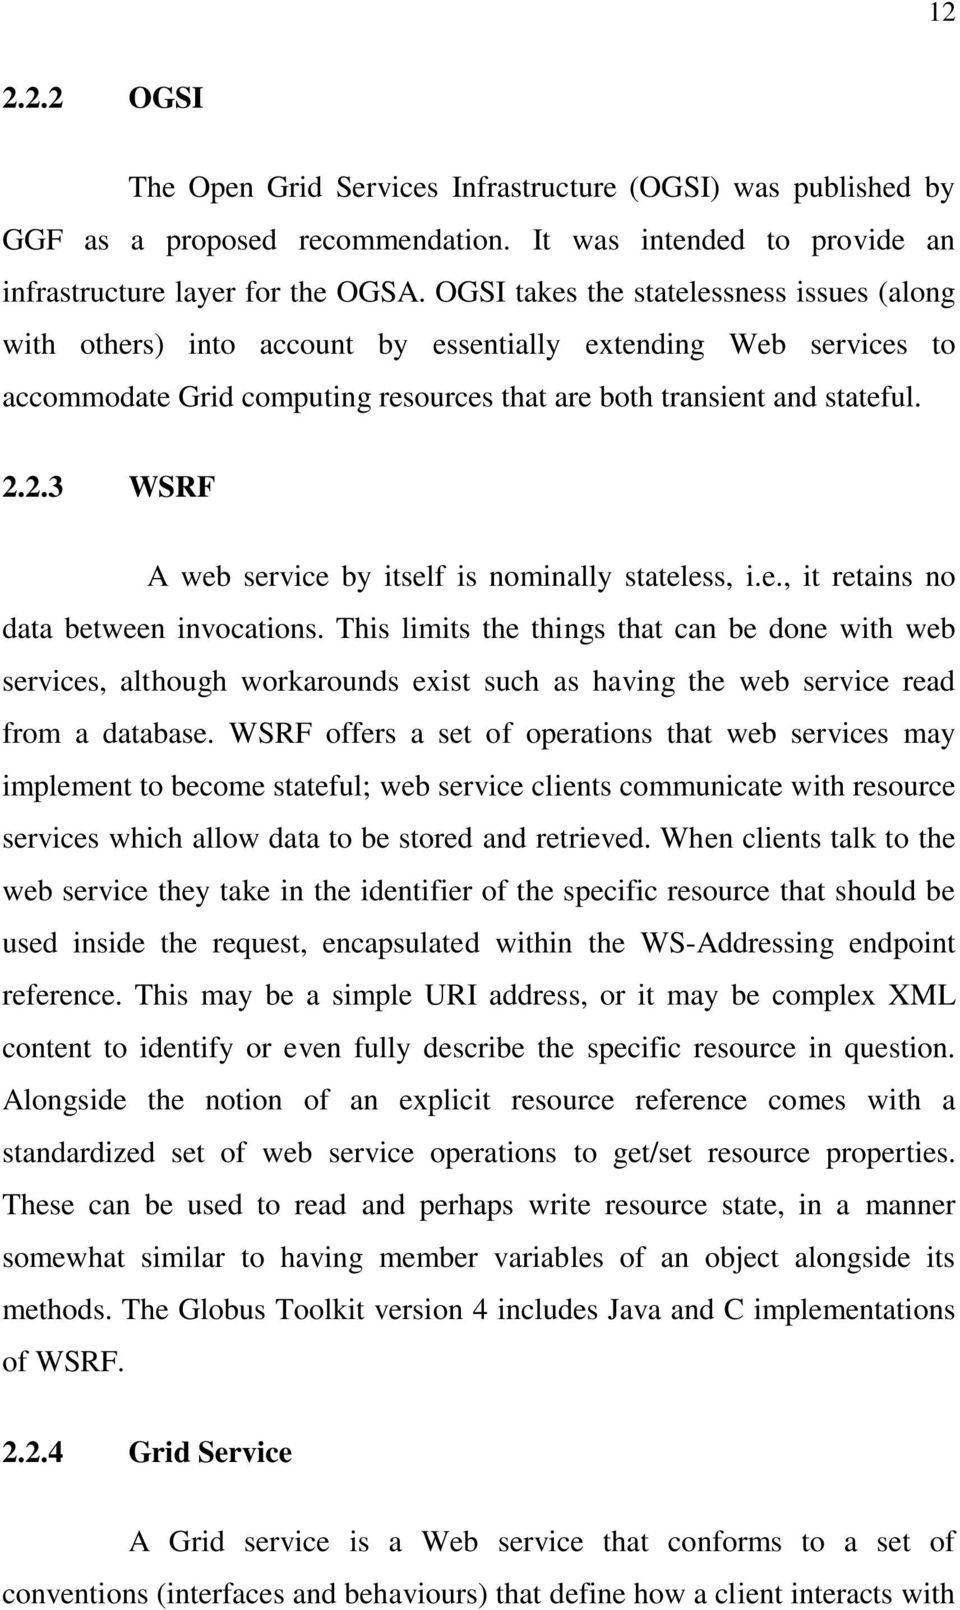 2.3 WSRF A web service by itself is nominally stateless, i.e., it retains no data between invocations.